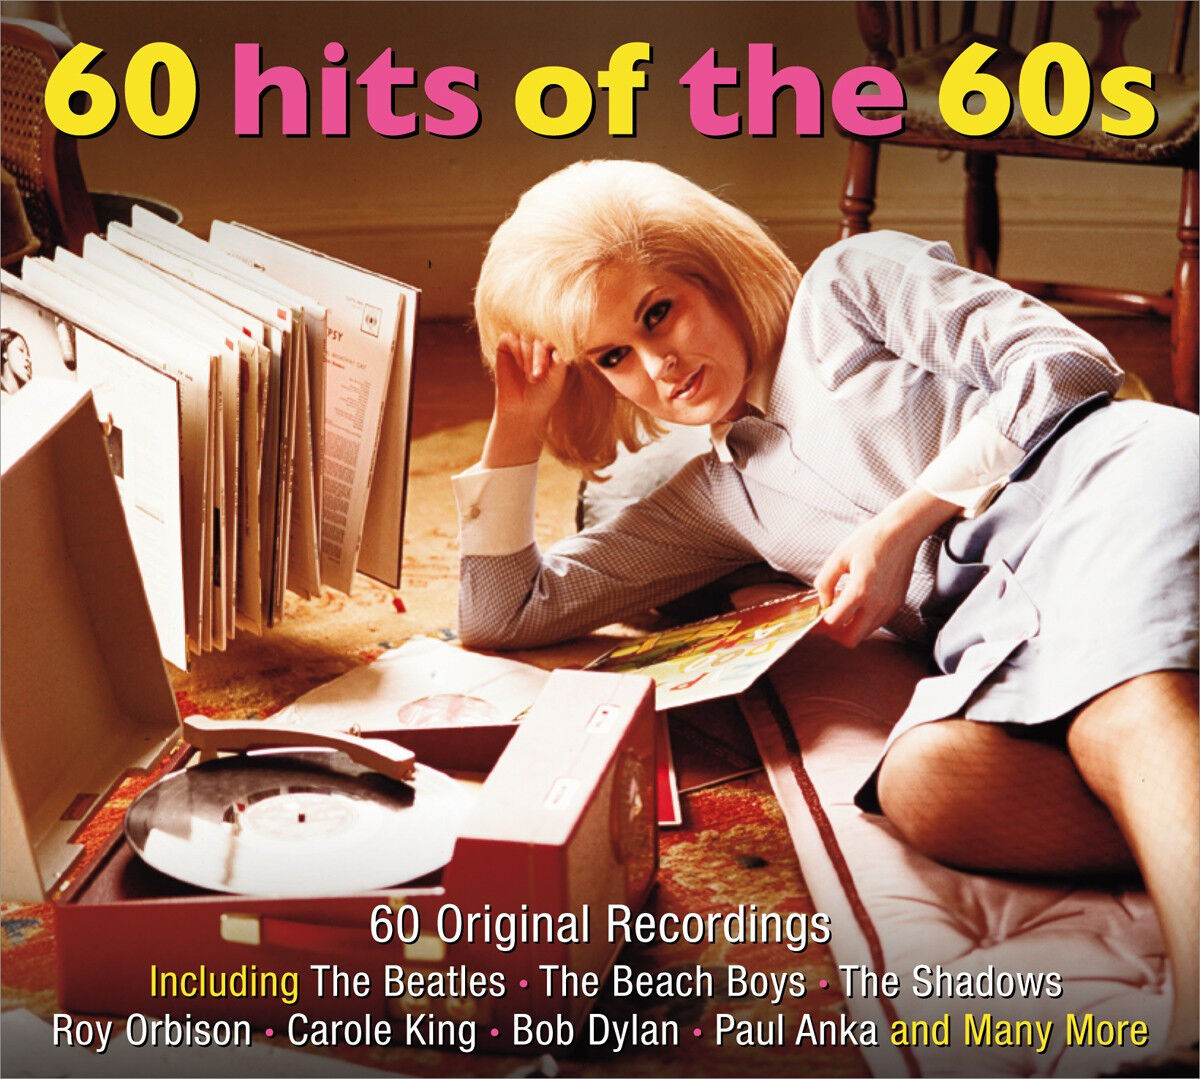 Купить 60 Hits Of The 60s VARIOUS ARTISTS Best Music Collection ESSENTIAL New 3 CD